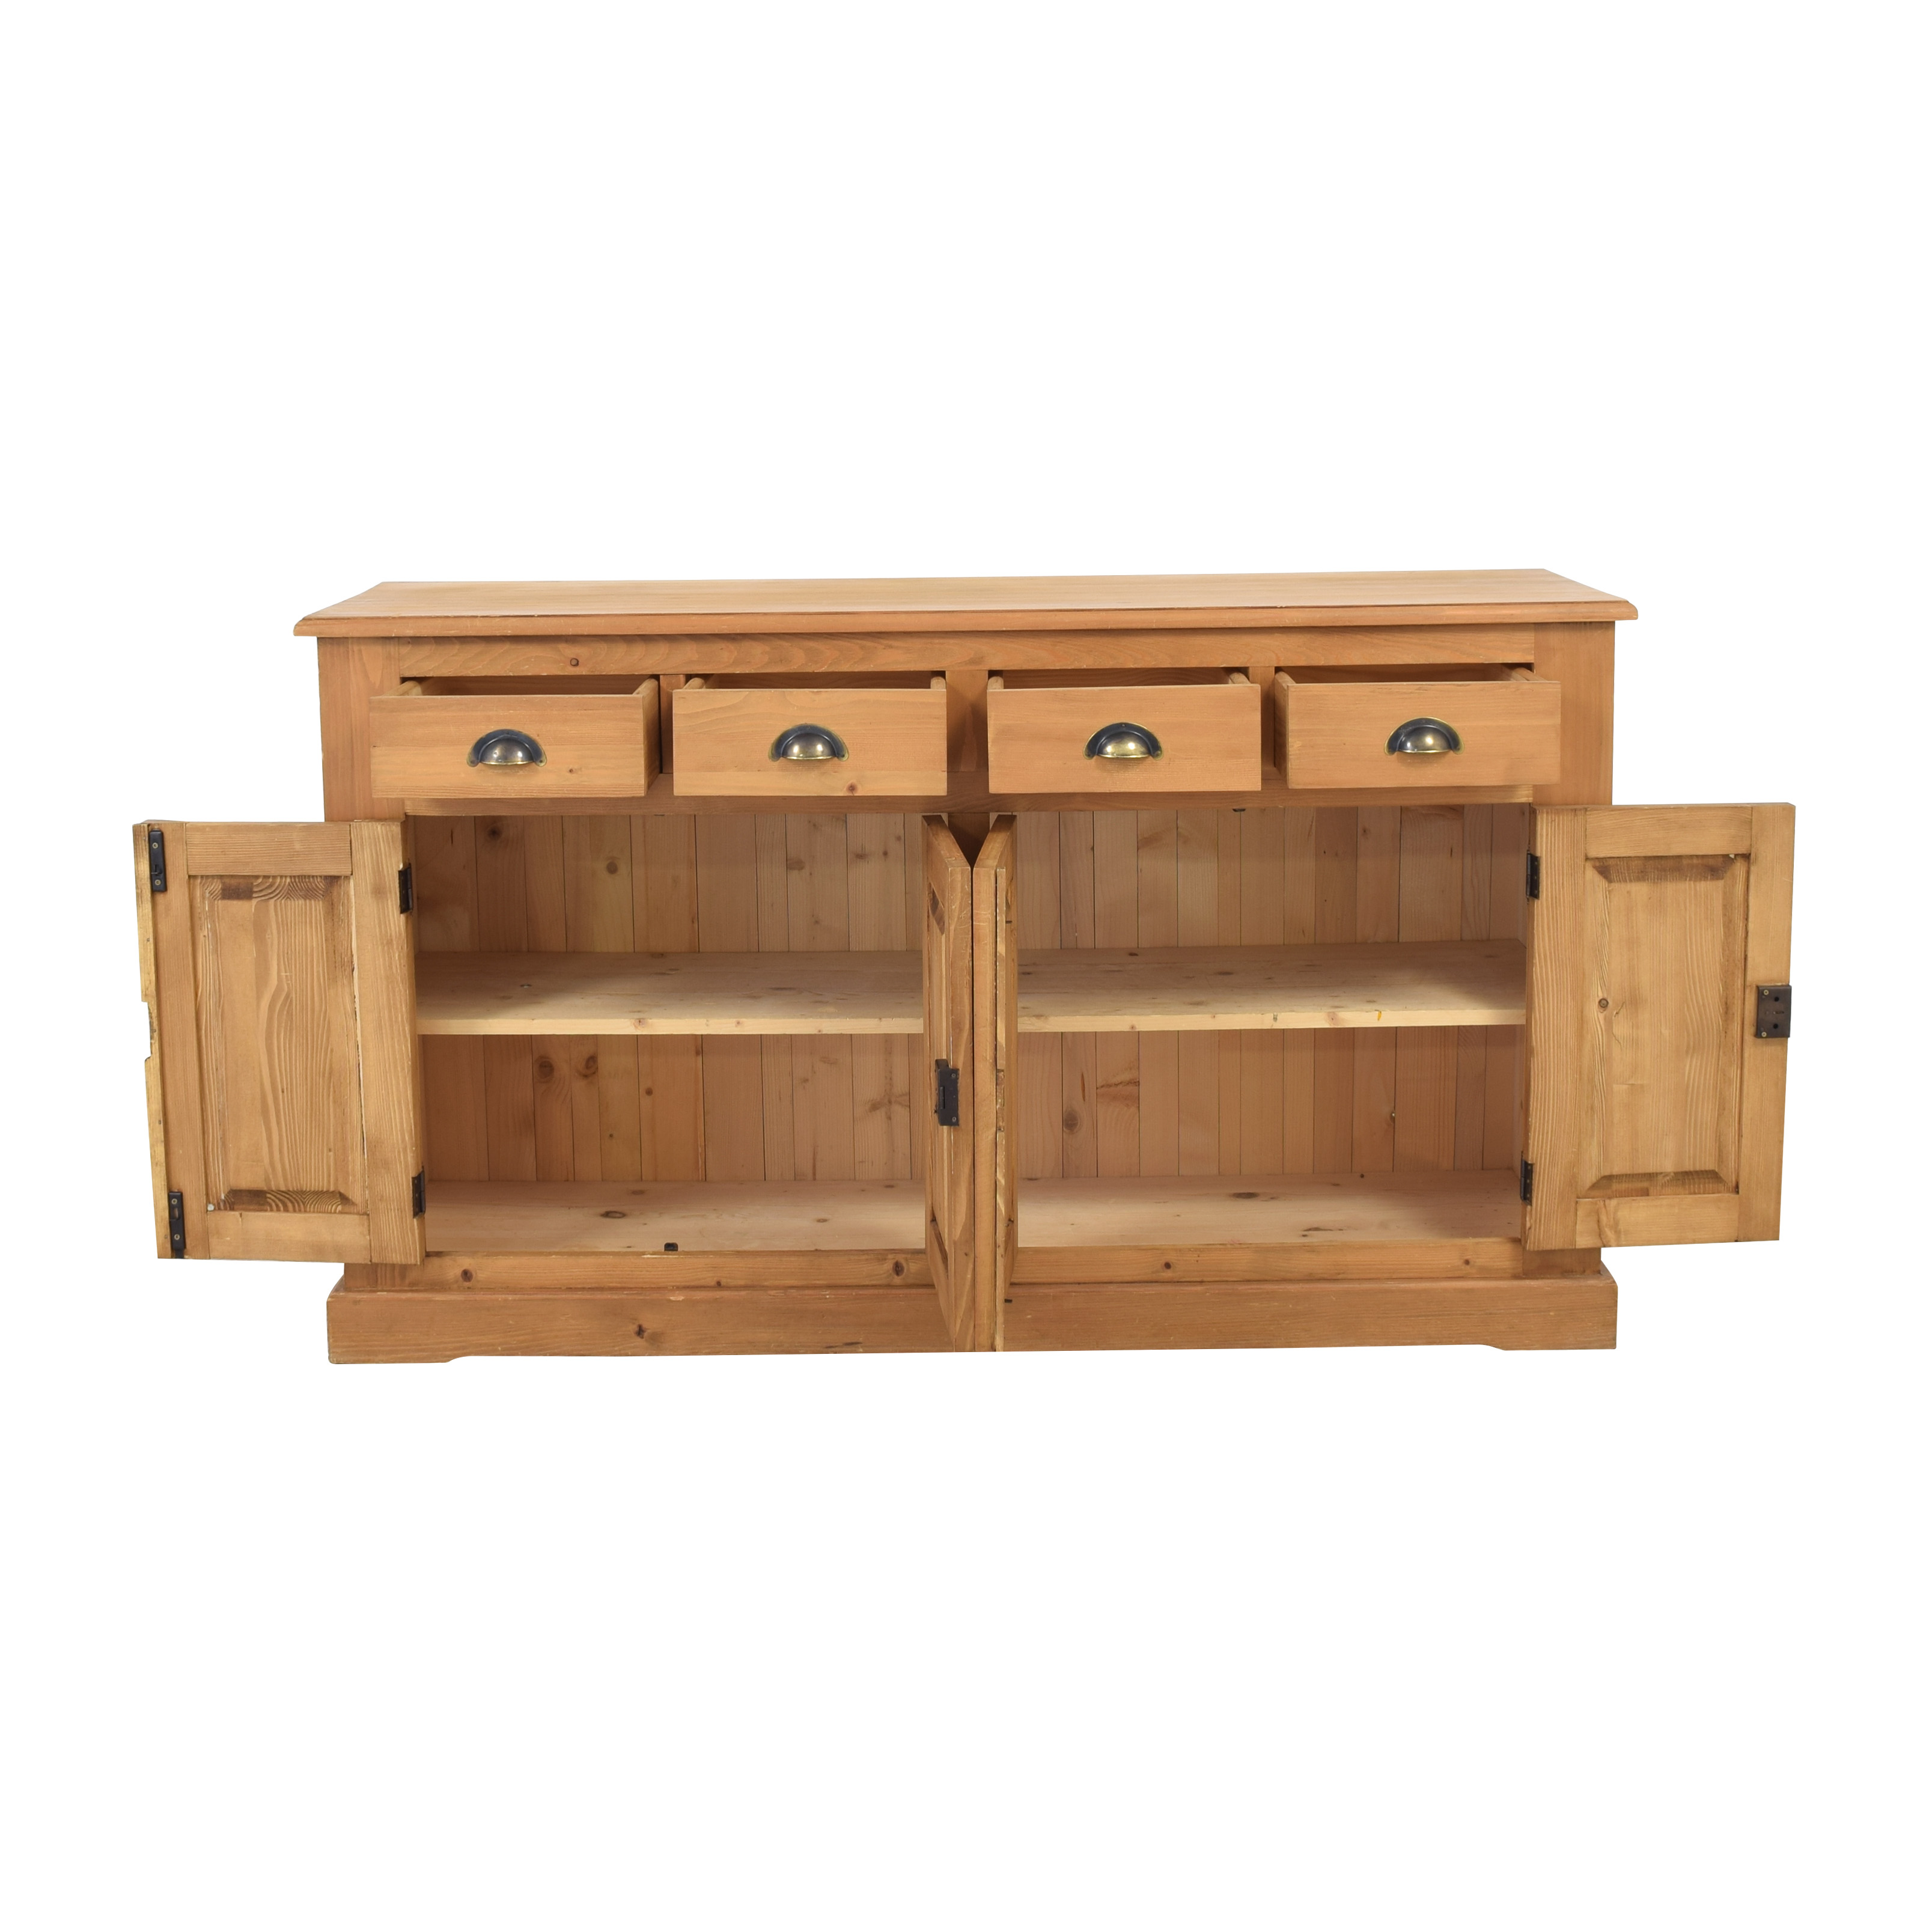 Wooden Cabinet with Four Drawers nj